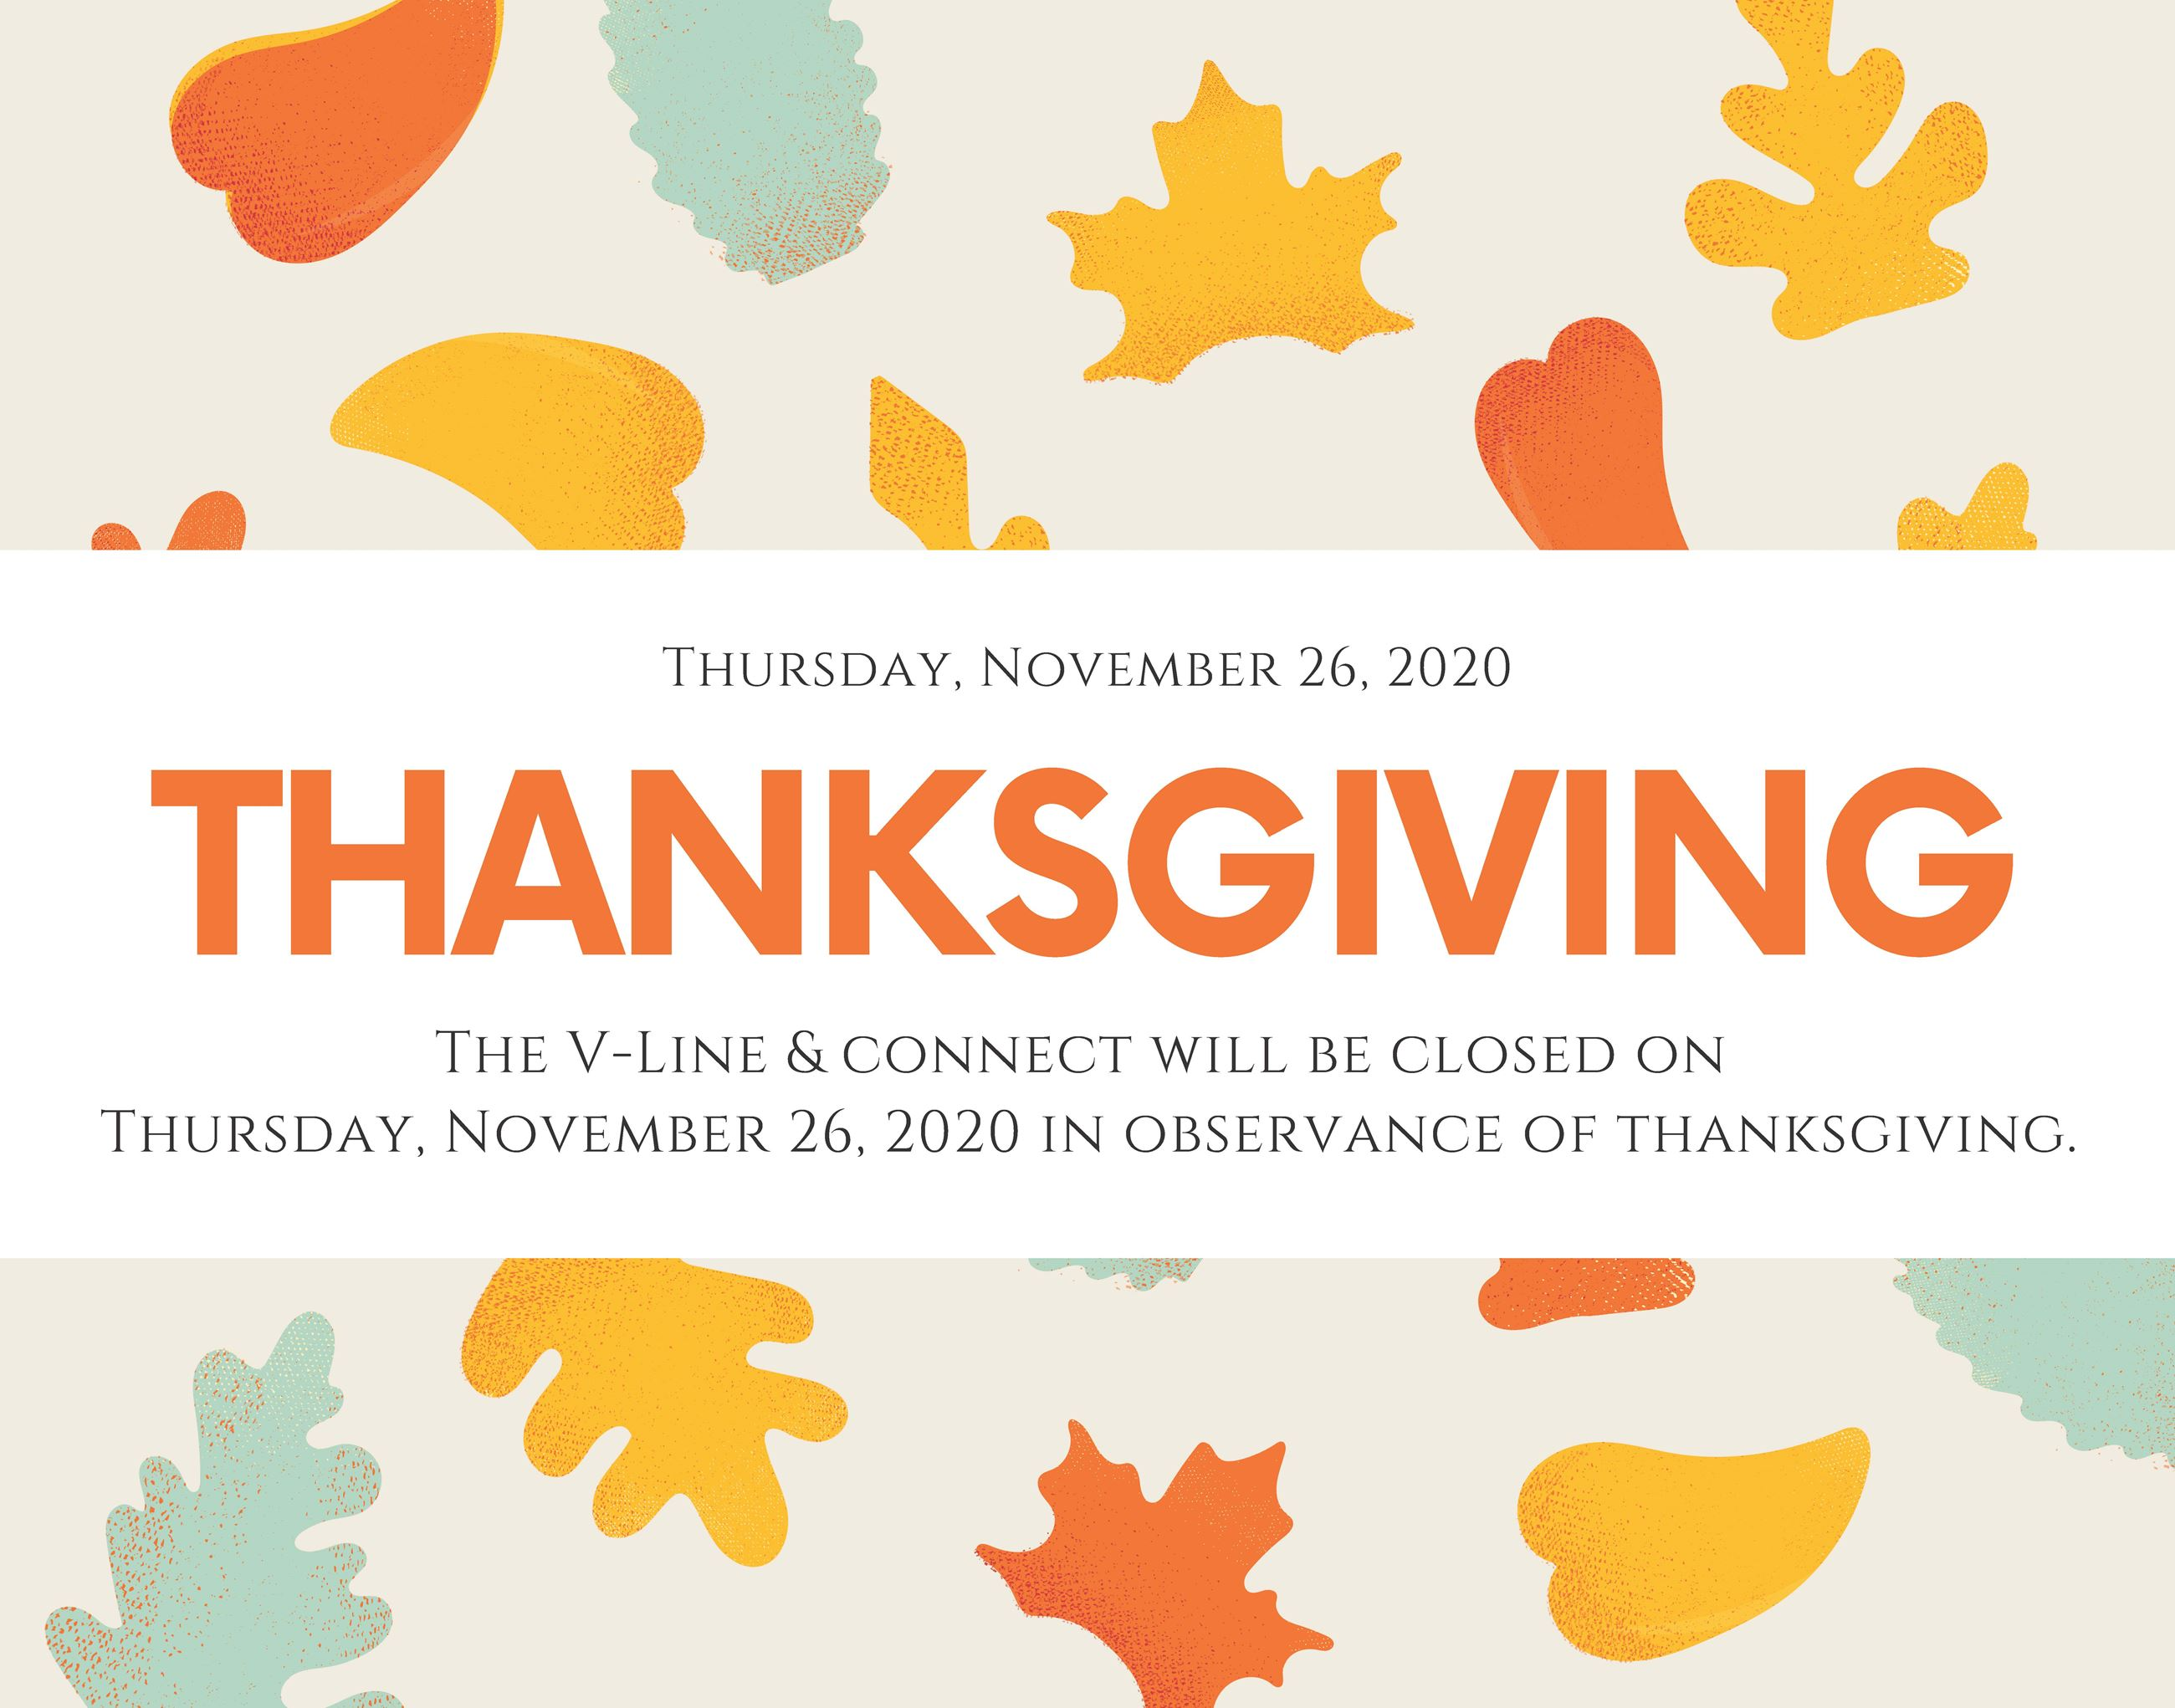 The V-Line & Connect will be closed on Thursday, November 26th, 2020 in observance of Thanksgiving.